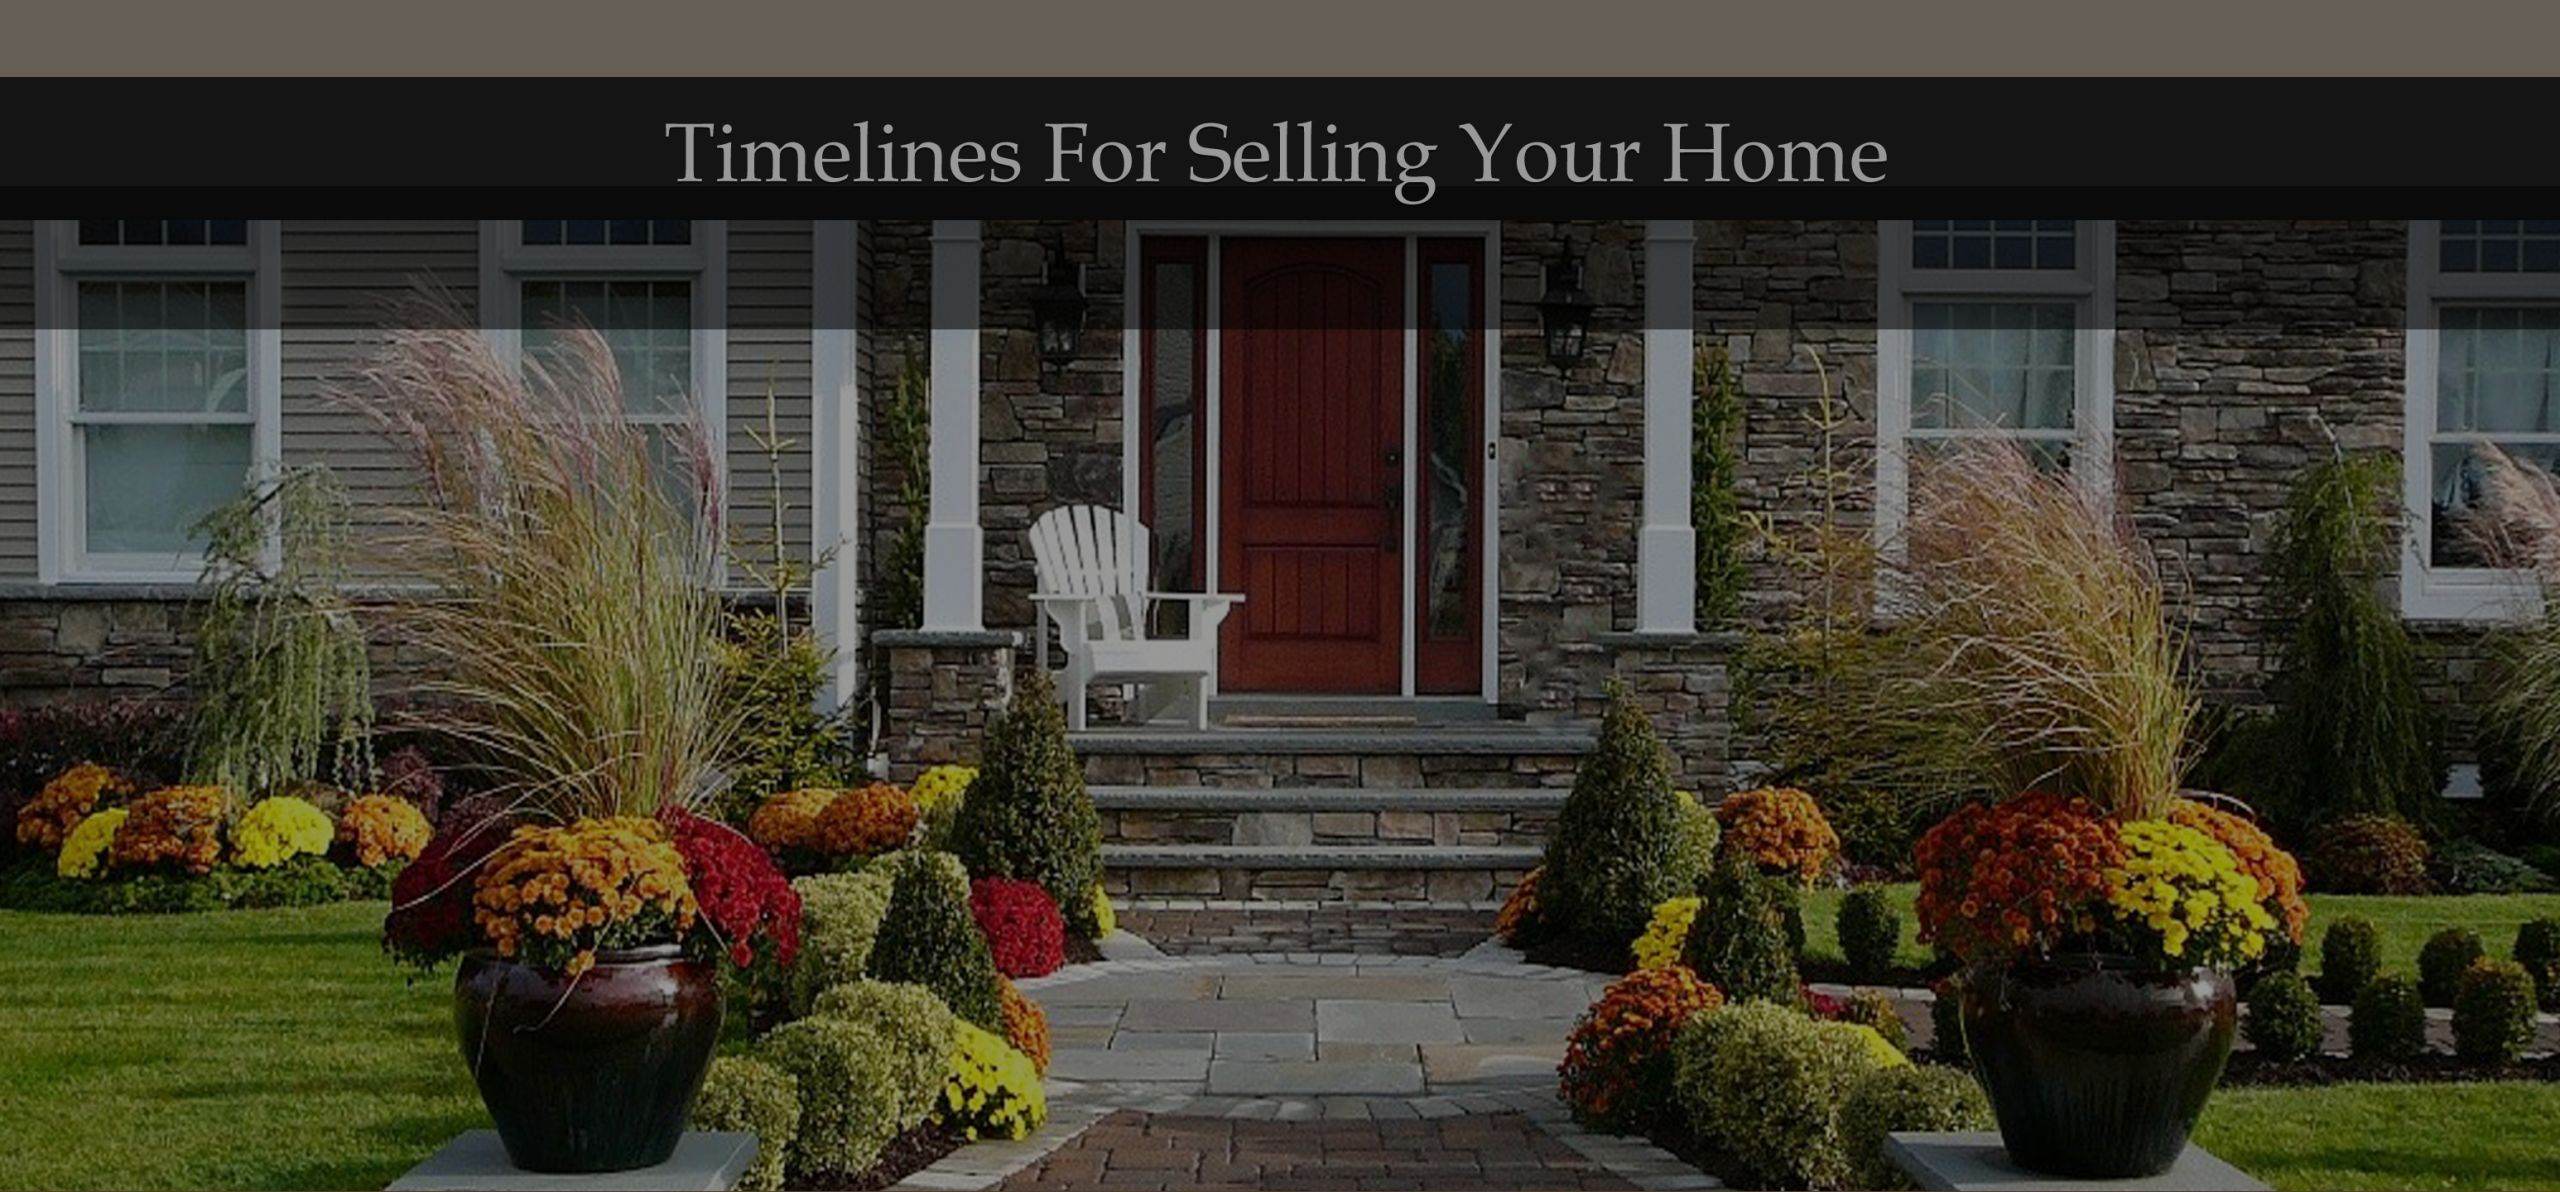 Top 11 Tips and the Timeline for Selling Your Home